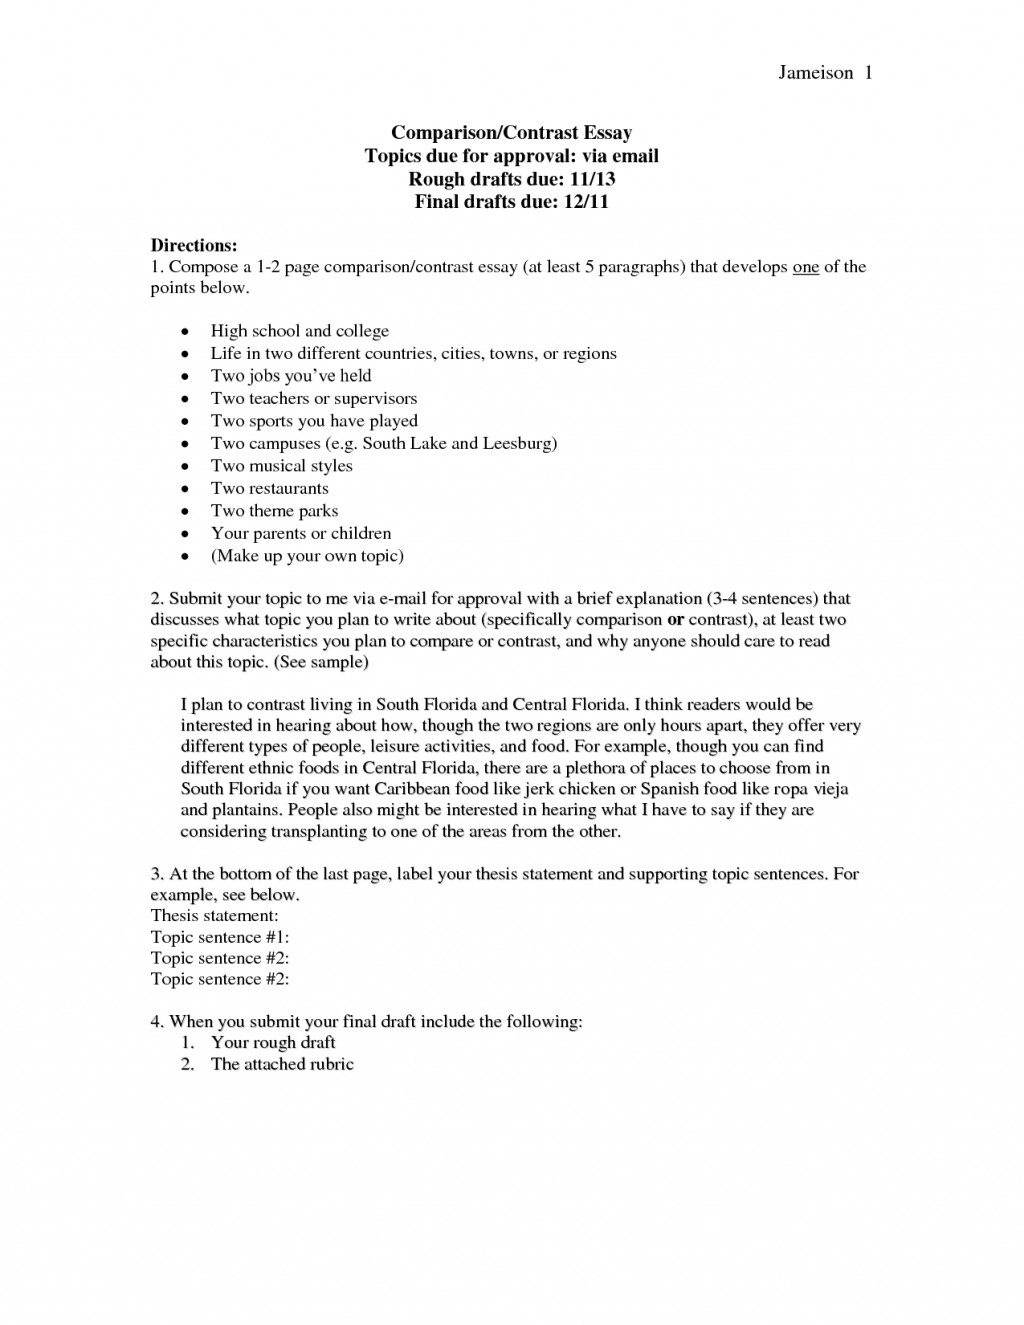 007 Essays For College Format Of Compare Contrast High School Vs And Outline 4 3rd Grade 4th 6th Pdf Block Middle Food 5th Breathtaking Essay Comparison Sample Point By Large